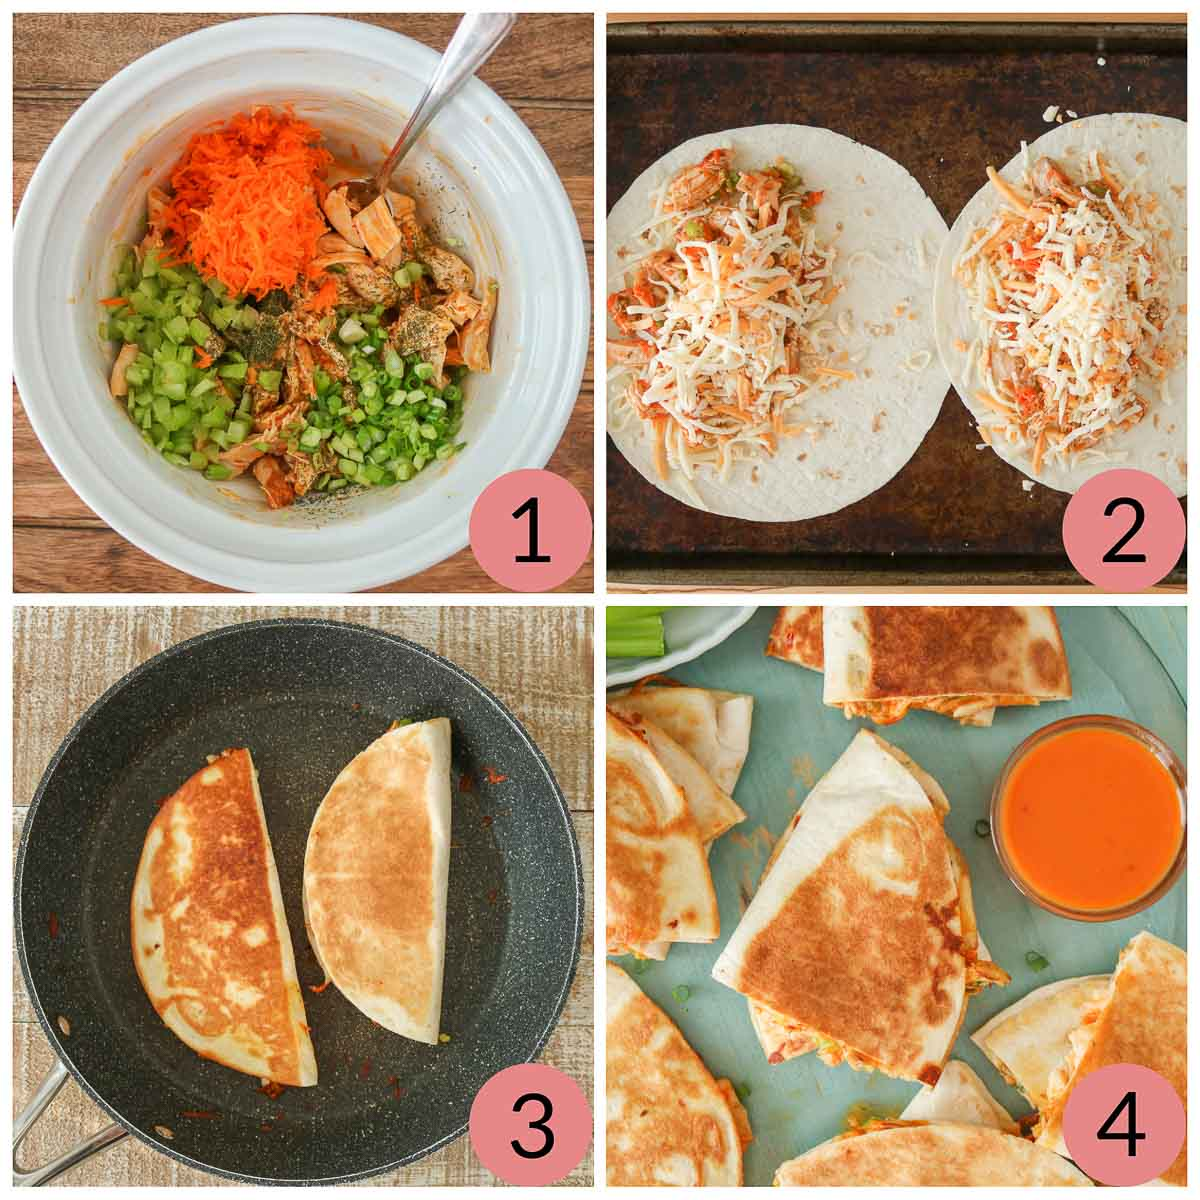 Collage of steps to make buffalo chicken quesadillas.